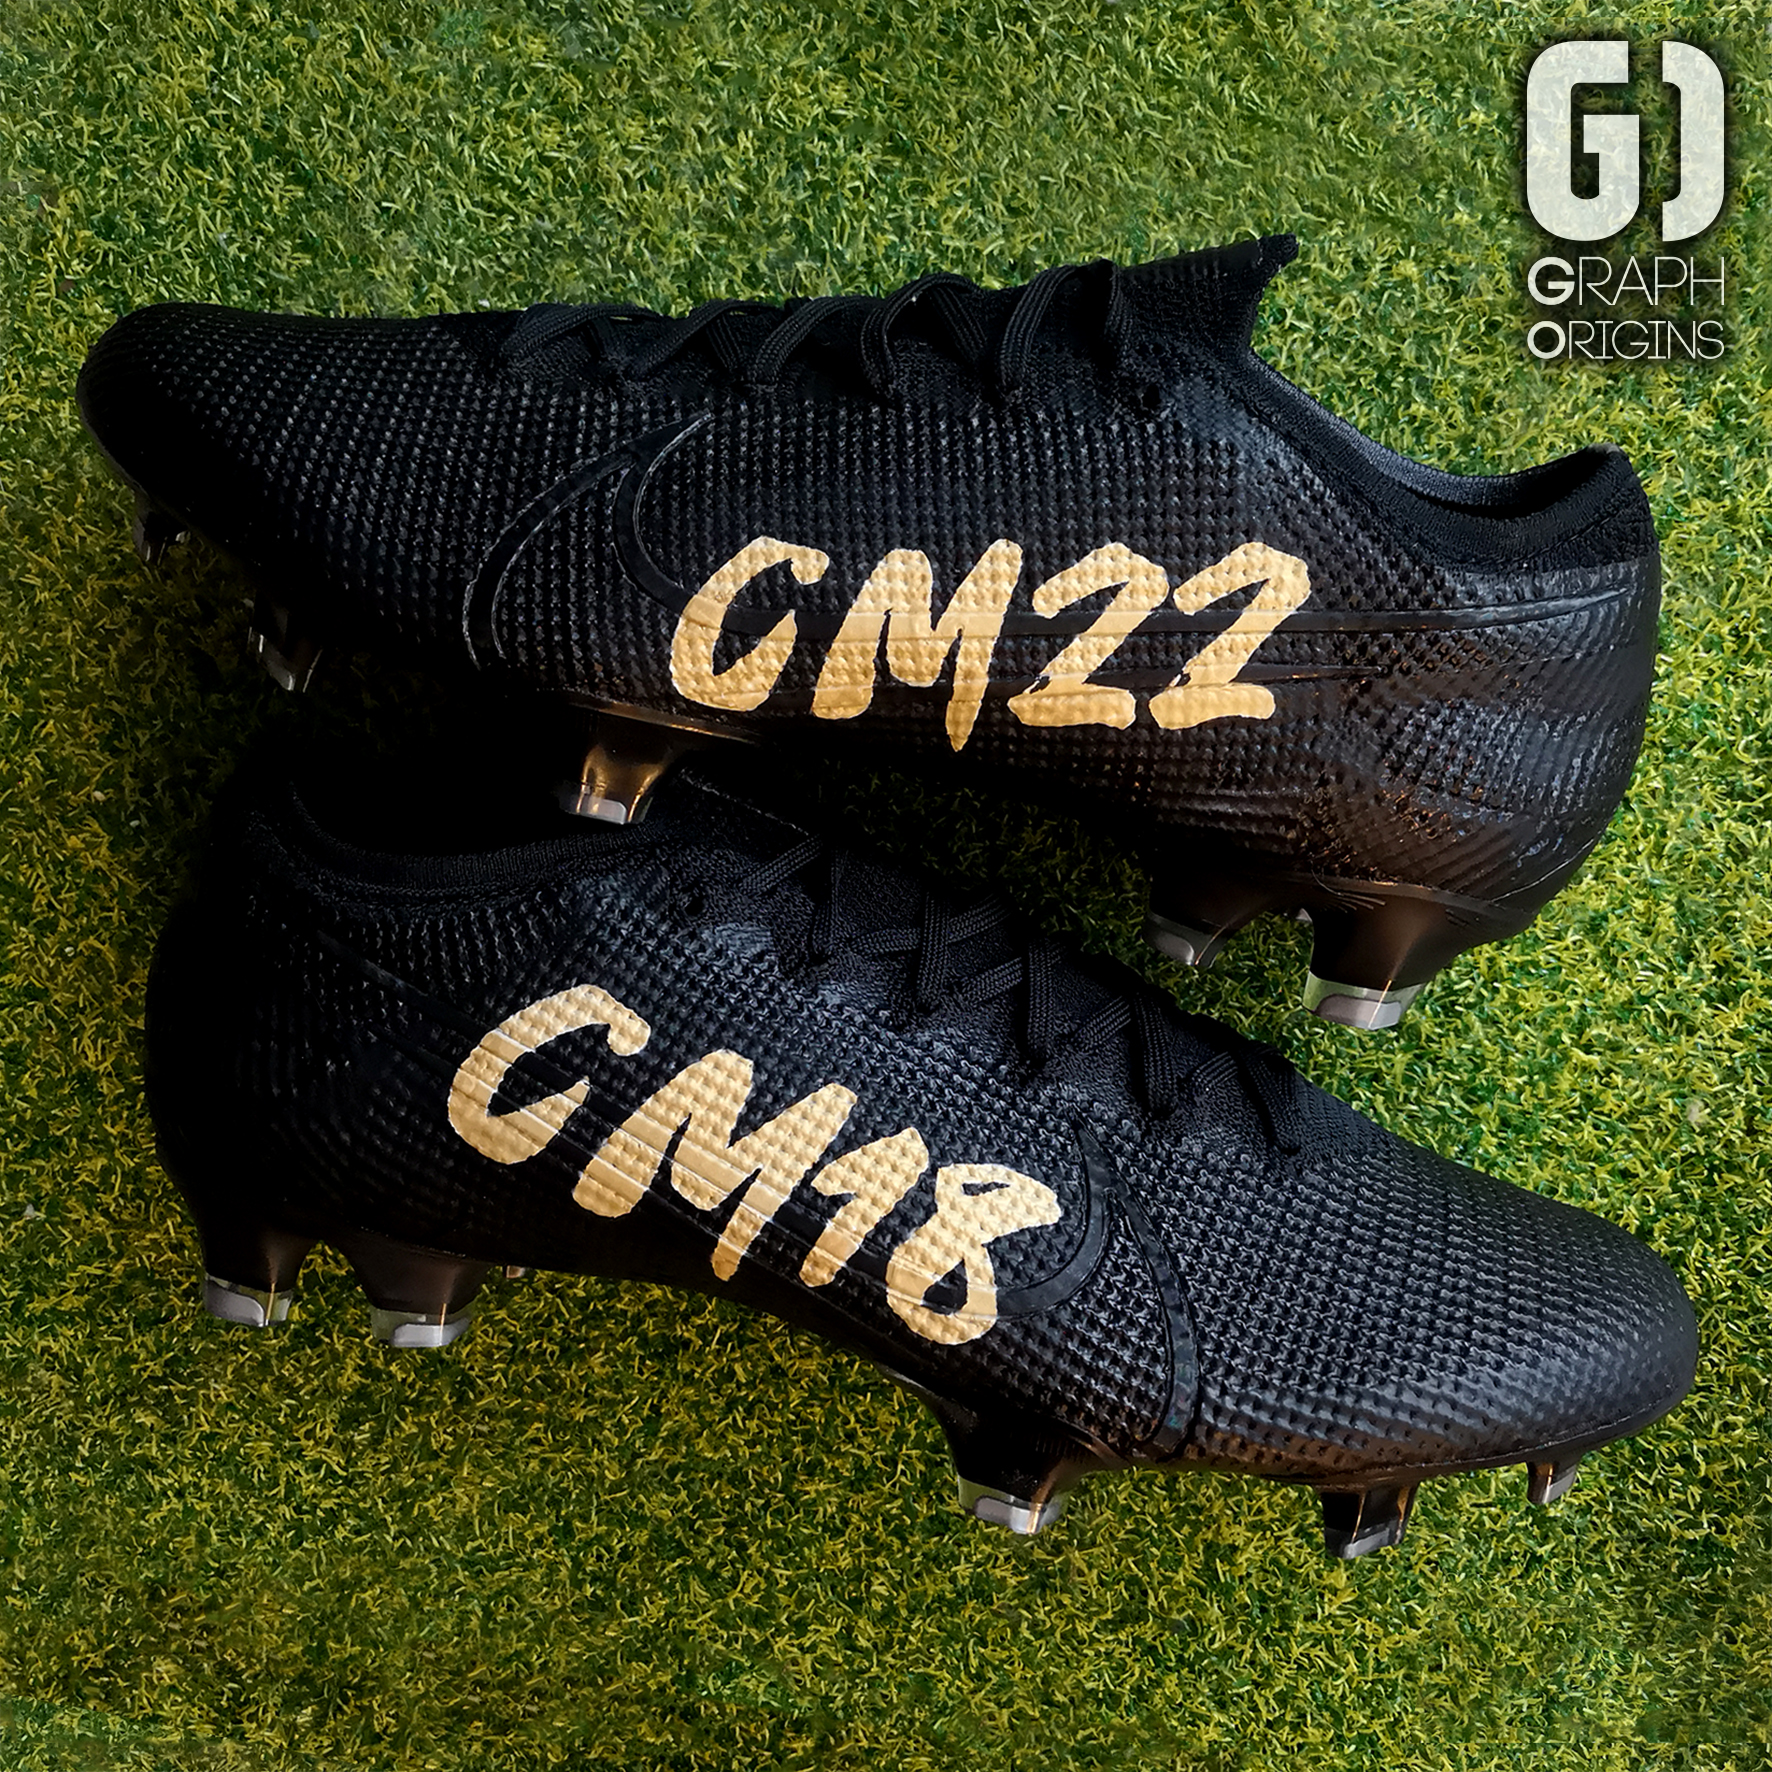 Chancel Mbemba Custom cleats Nike 2